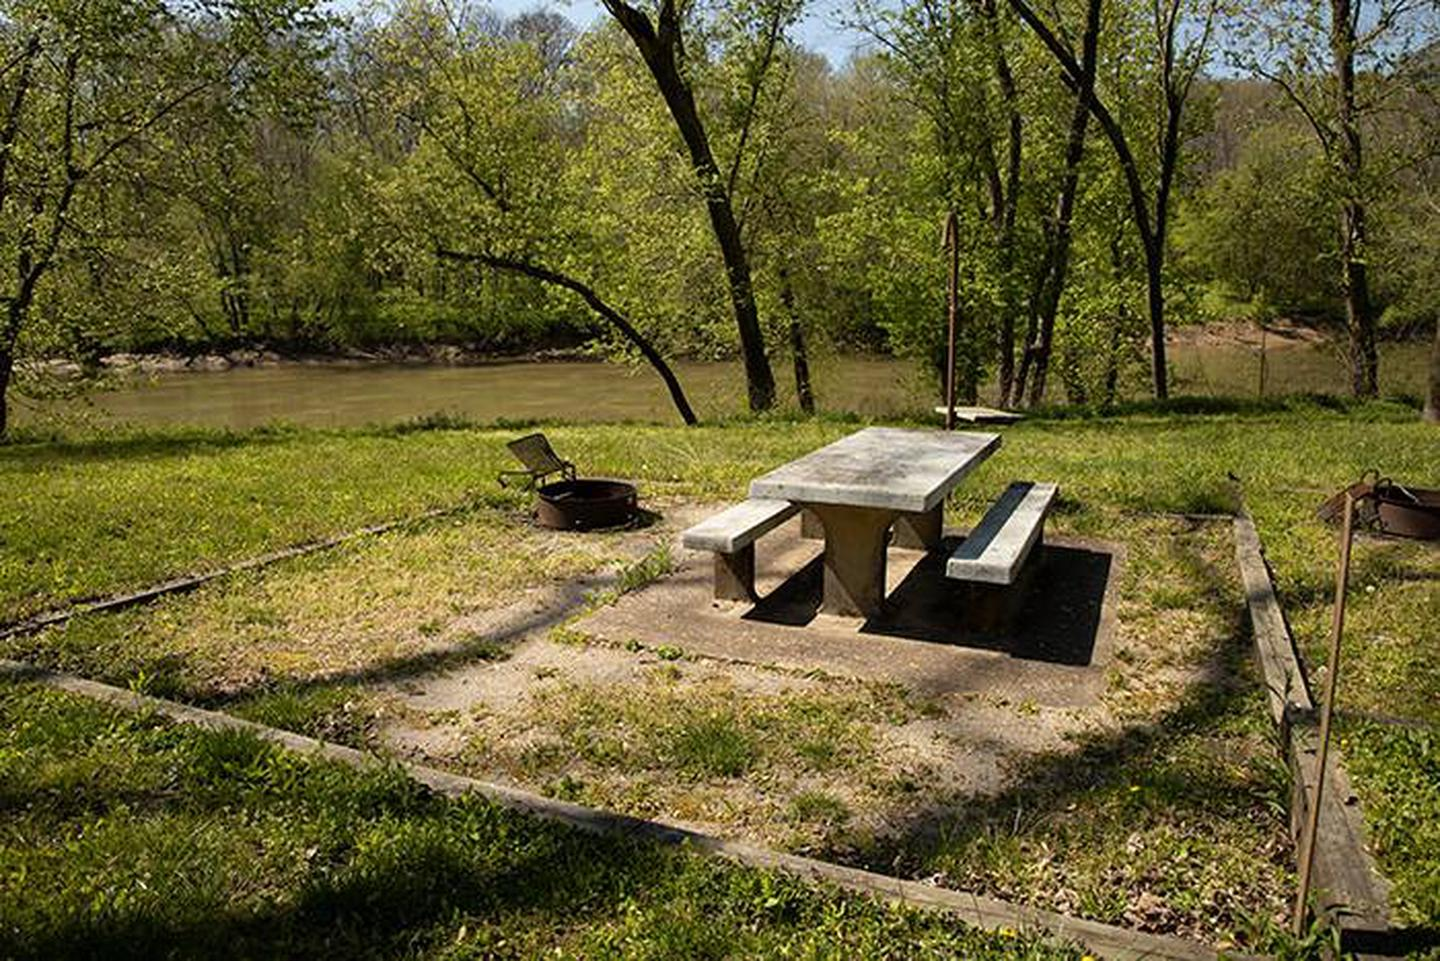 Campsite 4, located along the Green River.  This campsite has a picnic table and fire ring. Campsite number 4 is located with a view of the Green River, the campsite has a picnic table and fire ring.